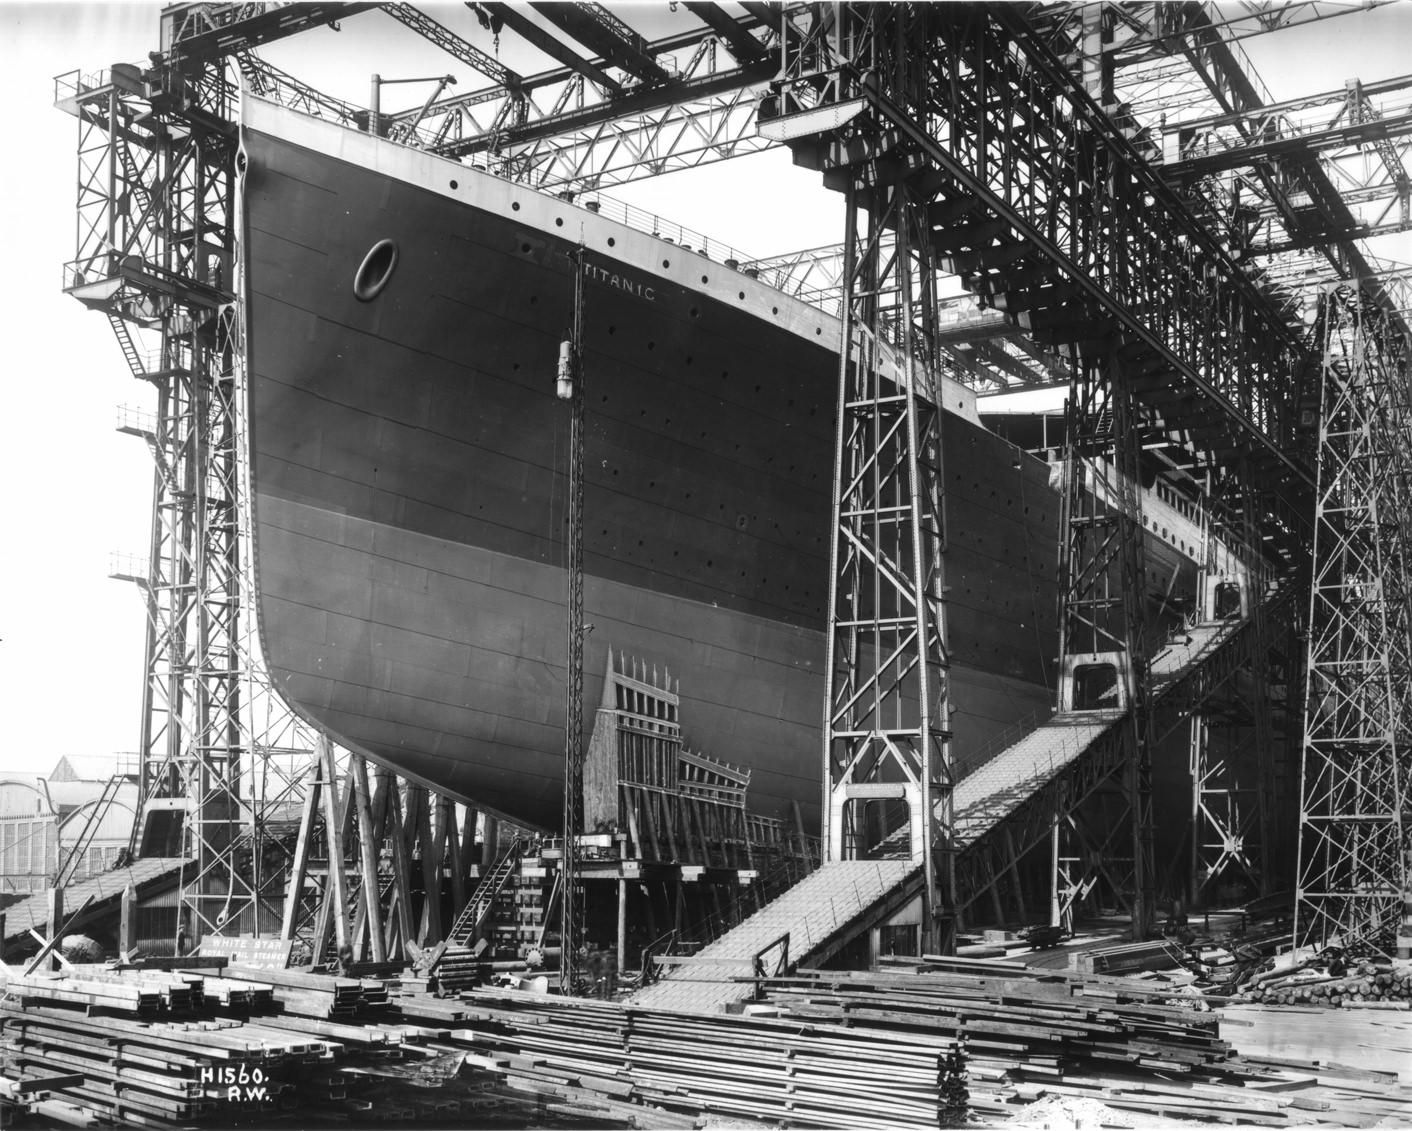 19 - The almost completed Titanic in Belfast Harbour, Ireland in 1911.